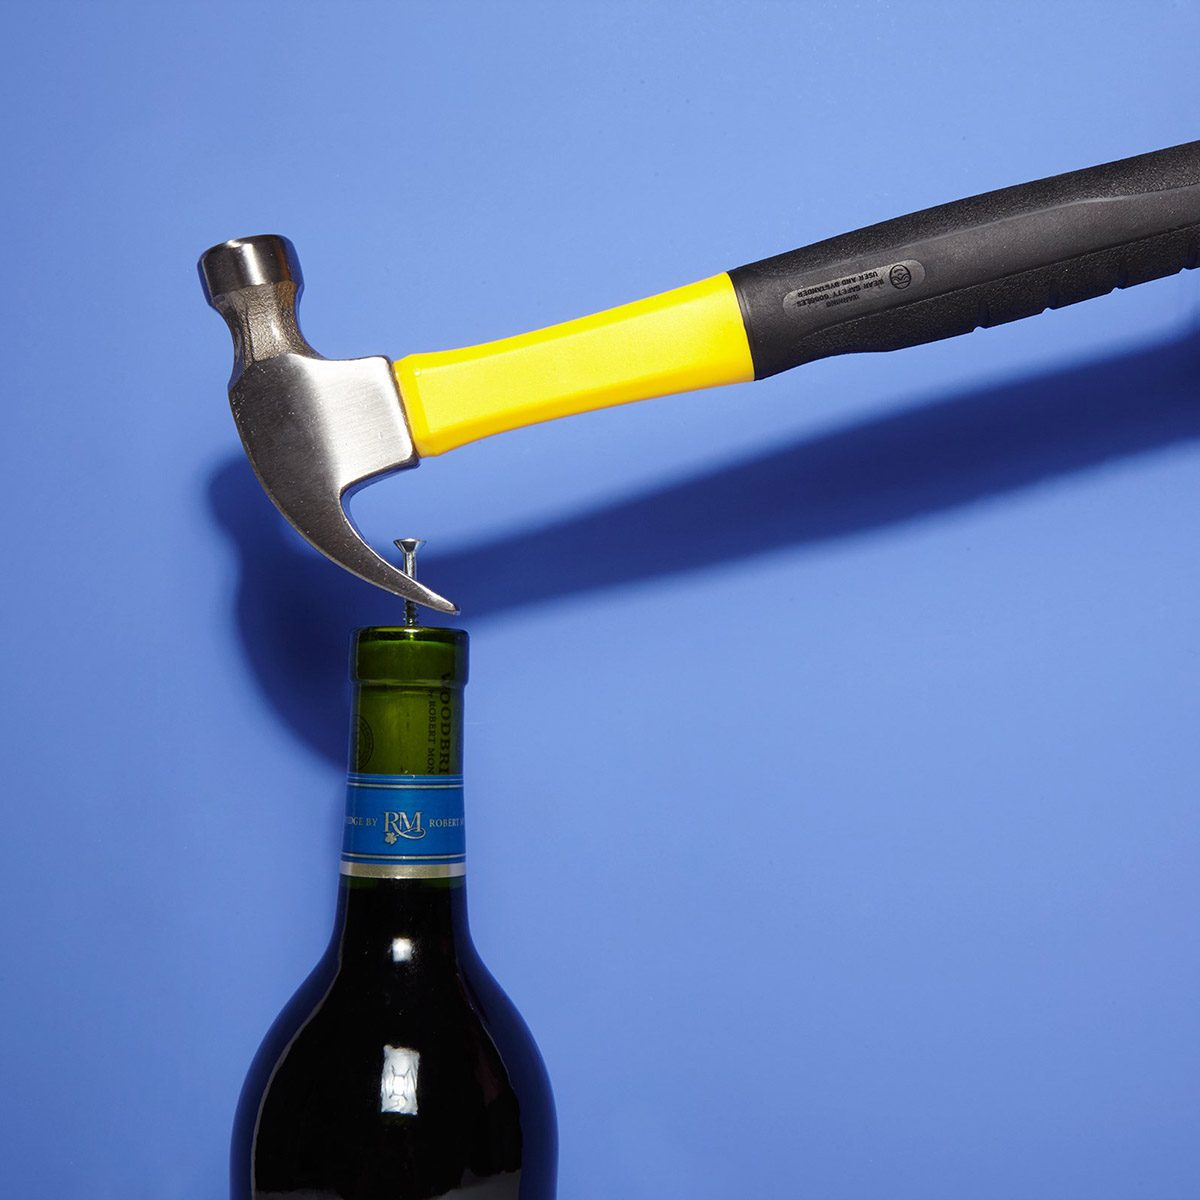 Using a hammer on a wine cork